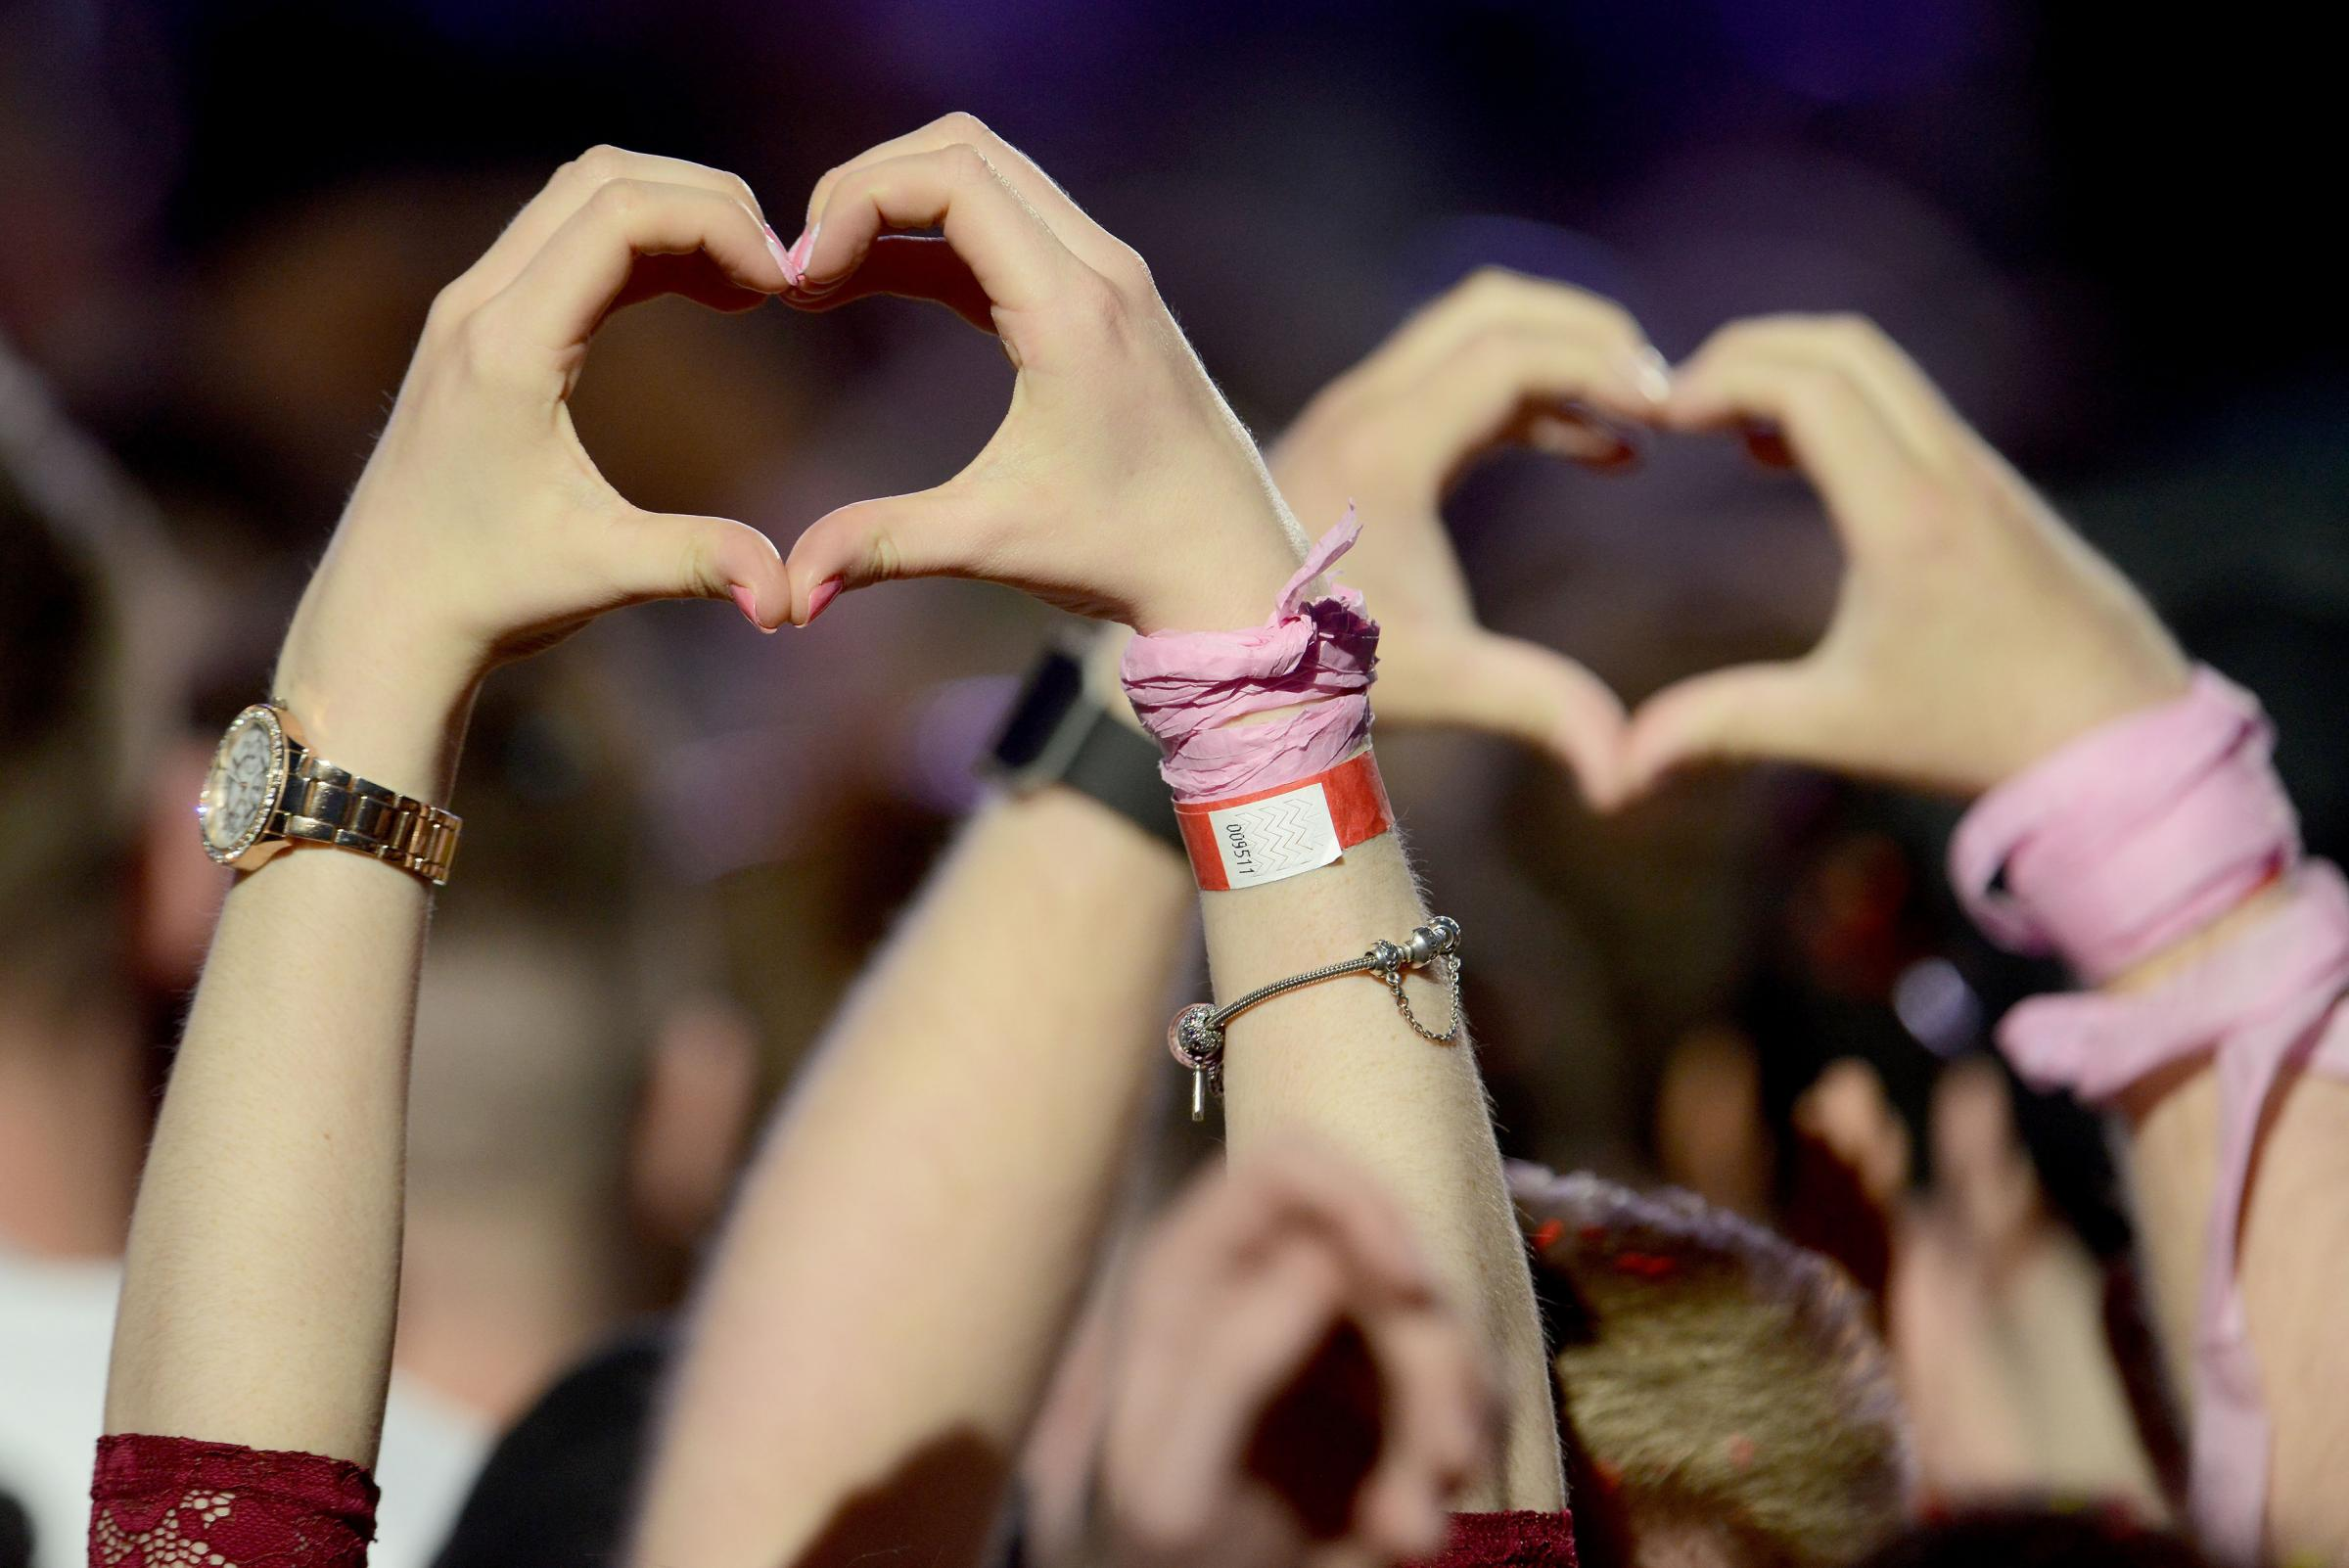 Hearts at the One Love Manchester concert organised by Ariana Grande in the aftermath of the attack. Picture: Dave Hogan for One Love Manchester/PA Wire